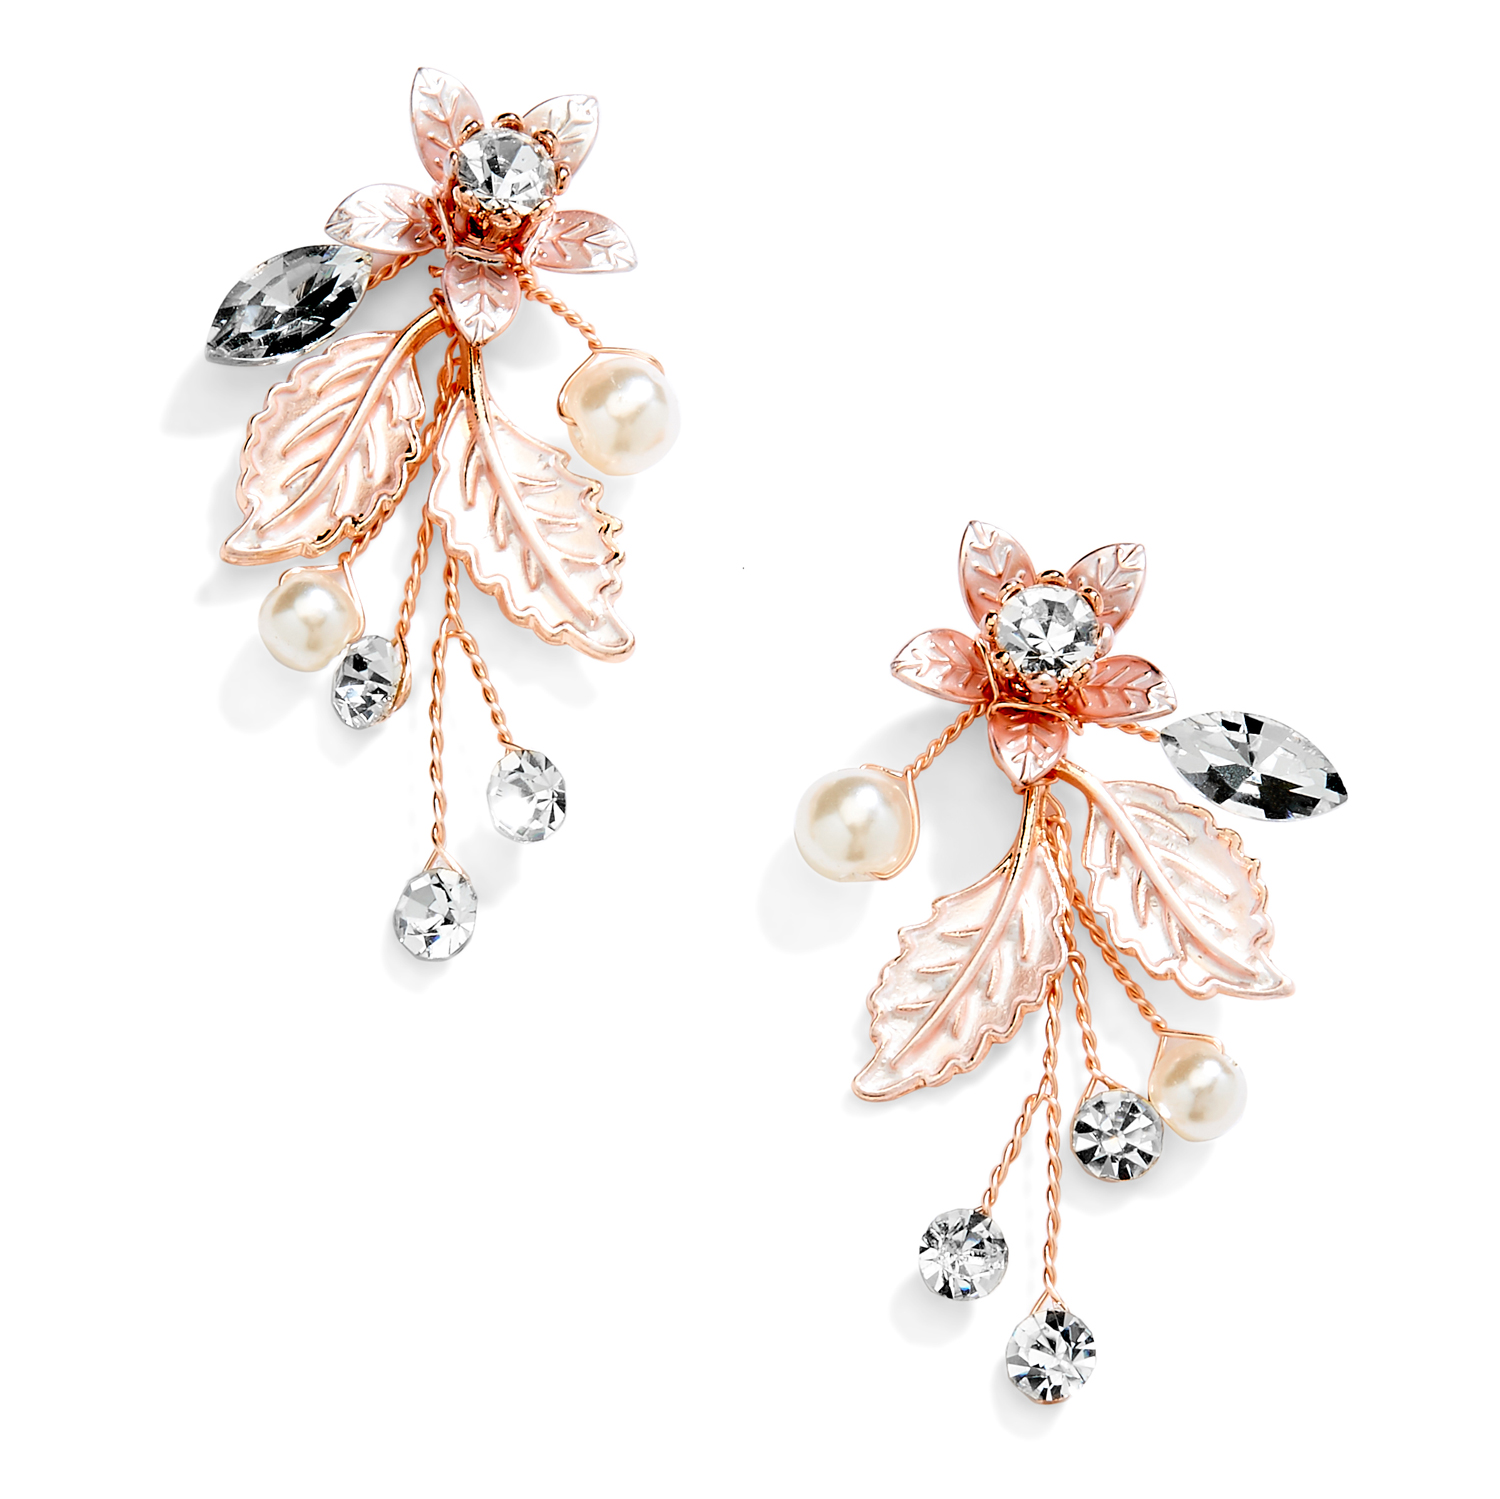 Rose Gold Vine Earrings with Crystals, Matte Silvery Leaves & Ivory Pearls<br>4598E-RG